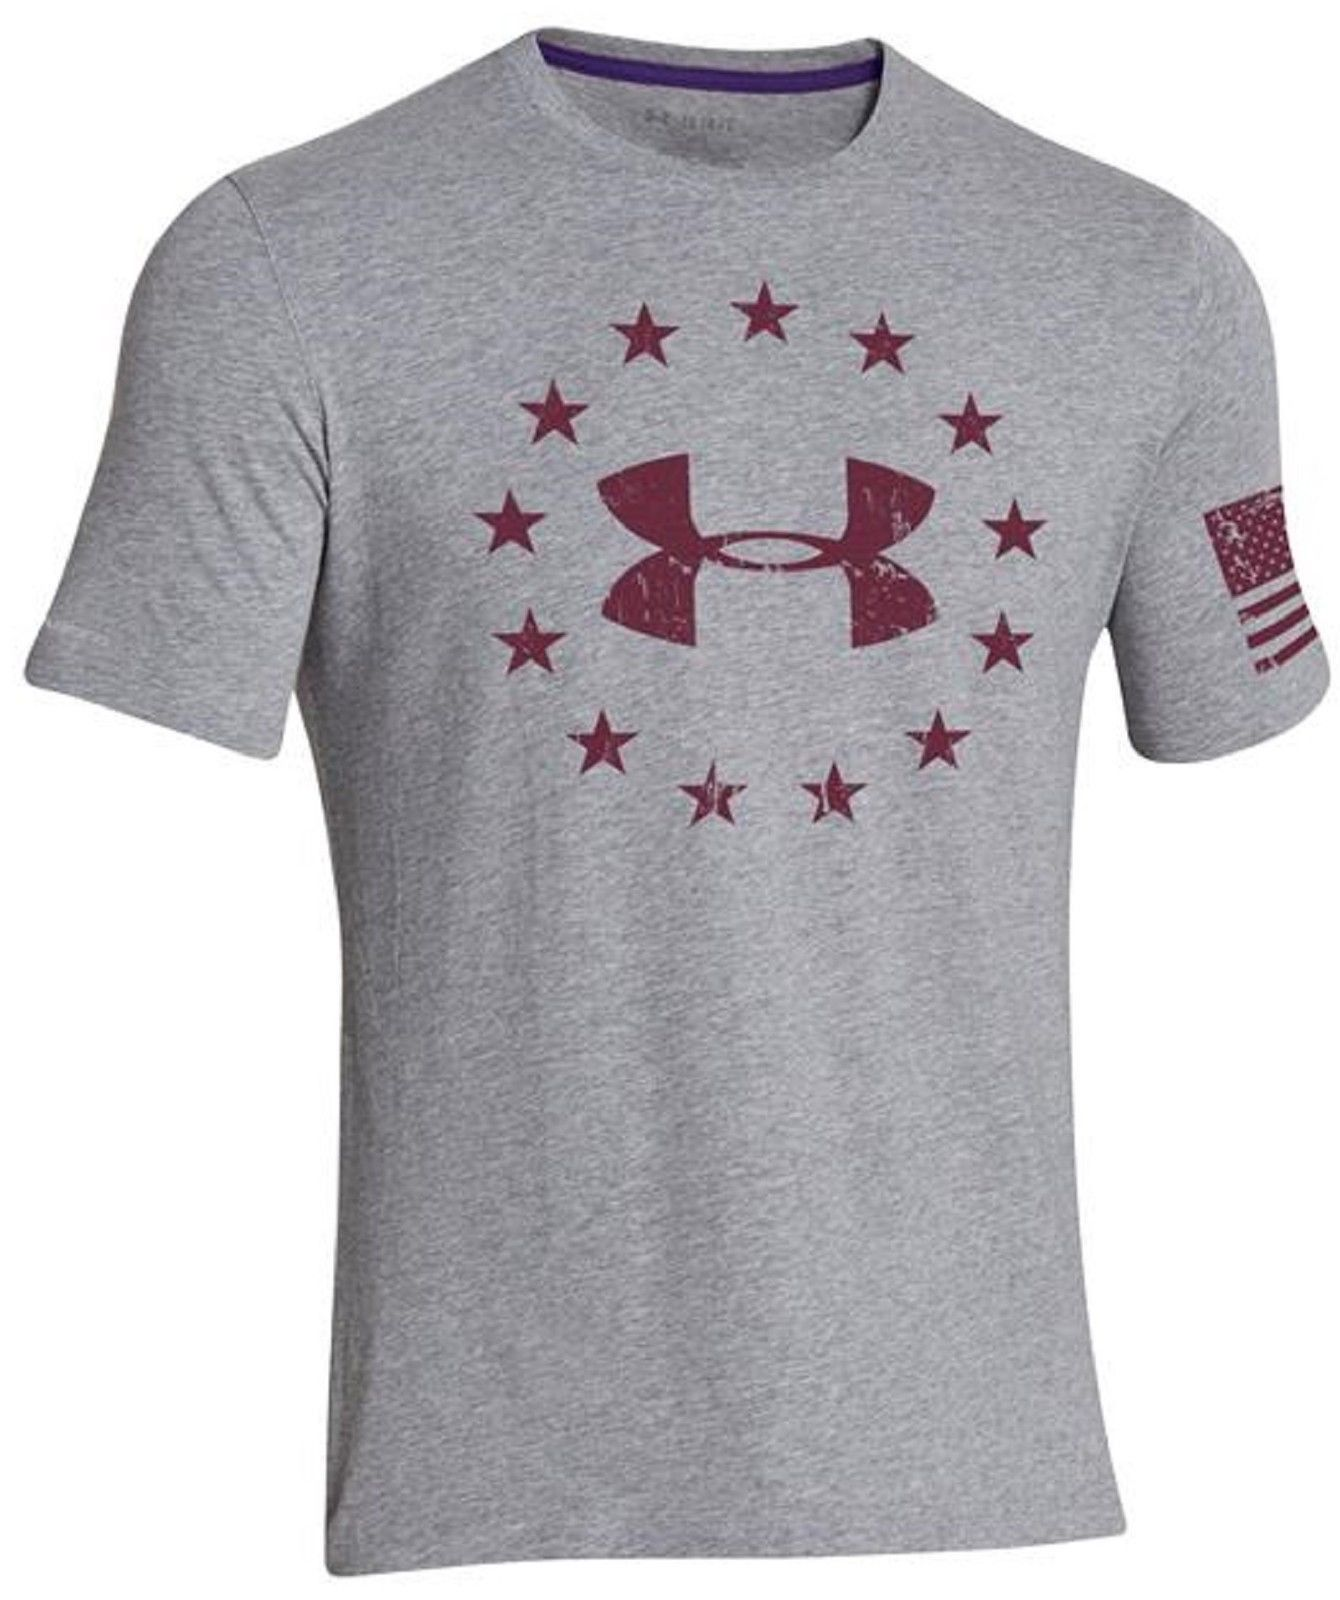 819f924c0561 Under Armour Mens FREEDOM Short Sleeve T-Shirt - UA Patriotic Stars ...